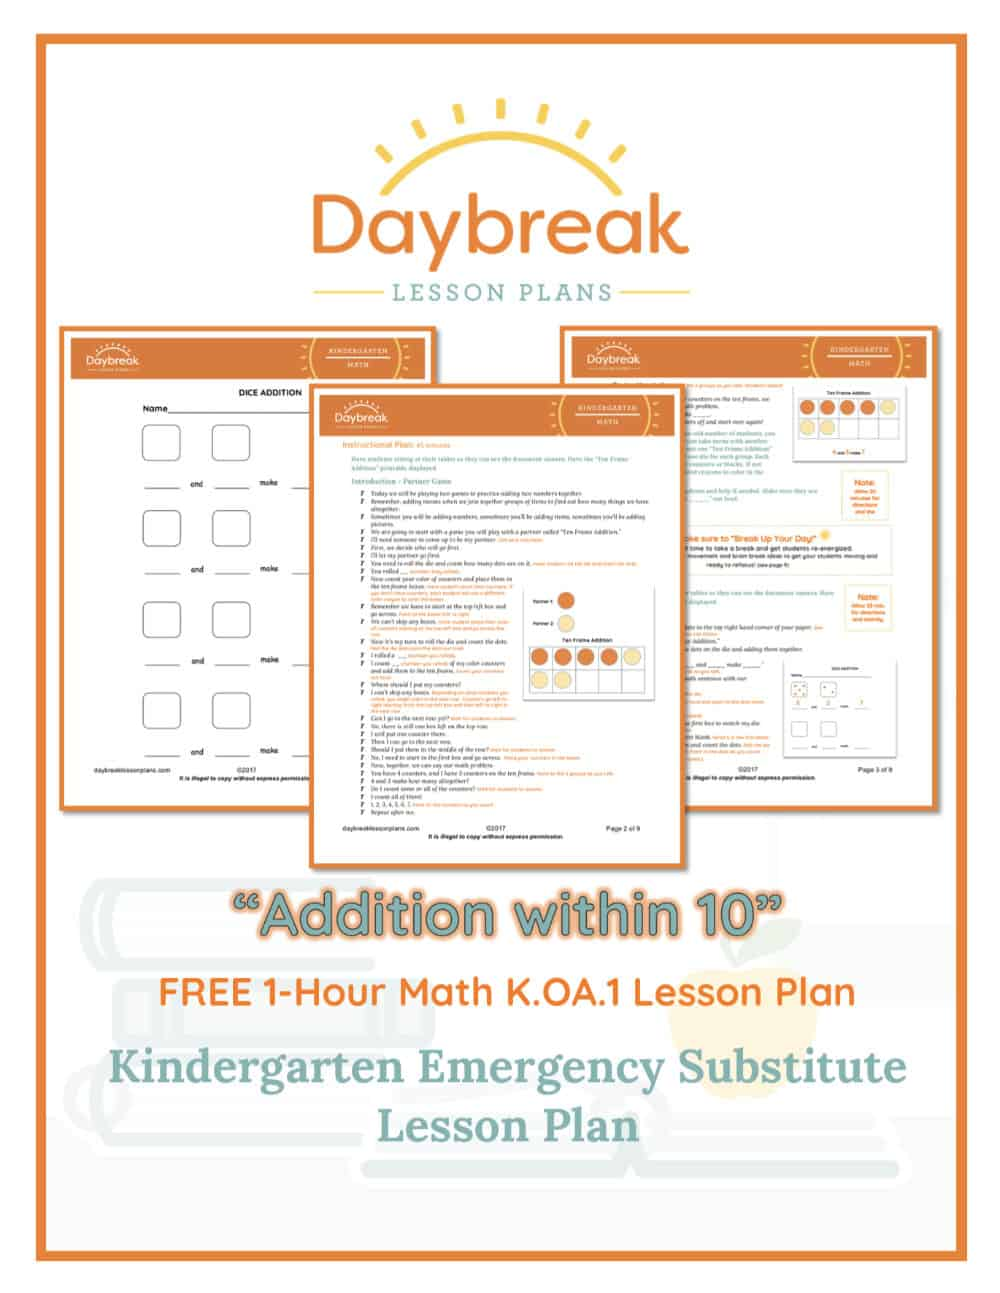 Illustration of the free Kindergarten Math lesson plan covers